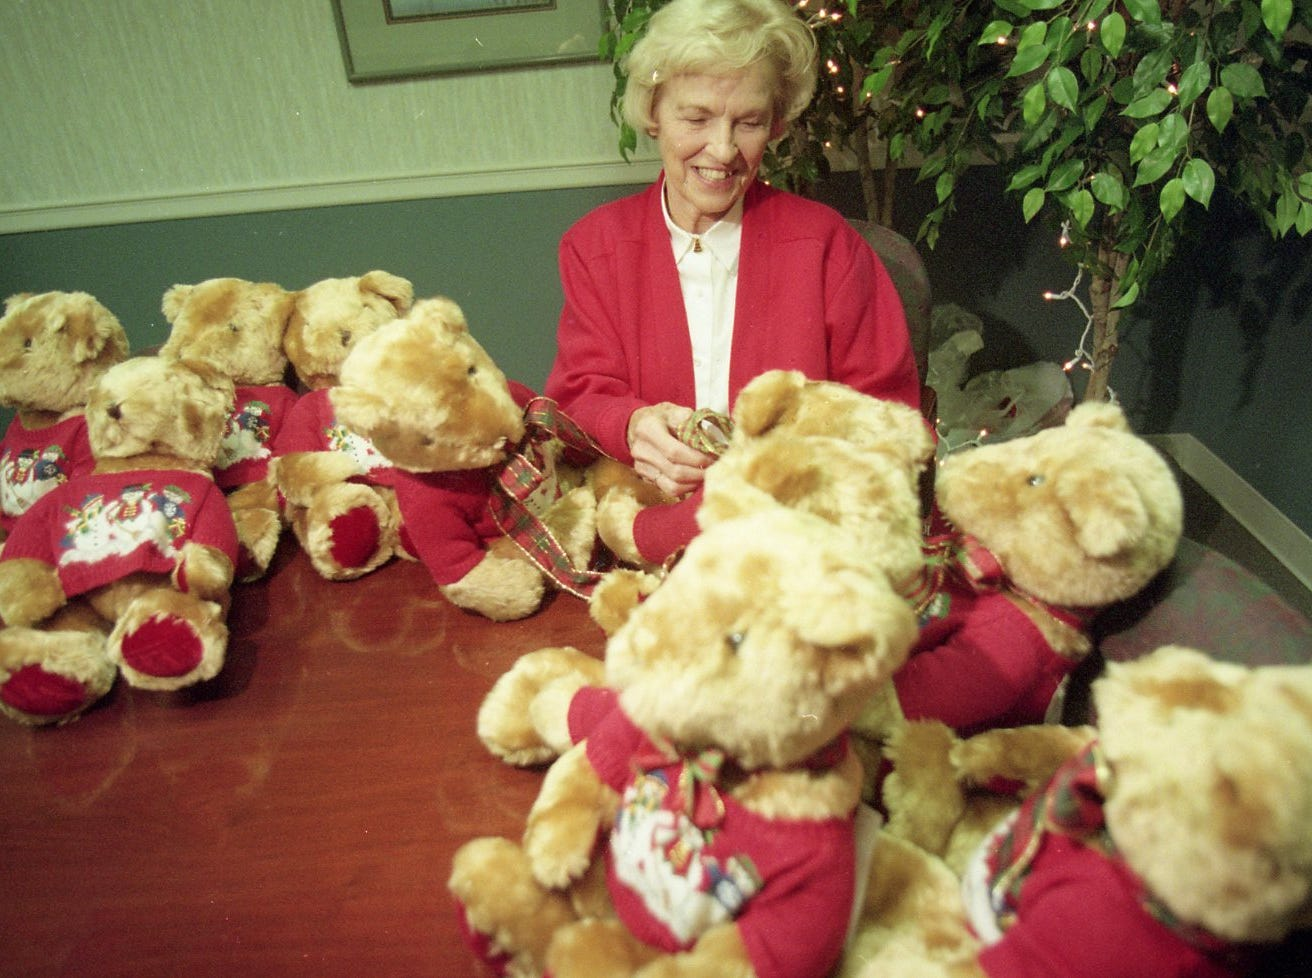 Peg Parker, who served as the first co-chair of Fantasy of Trees, puts ribbons on stuffed bears at Children's Hospital that will be part of this years tea, 1999.